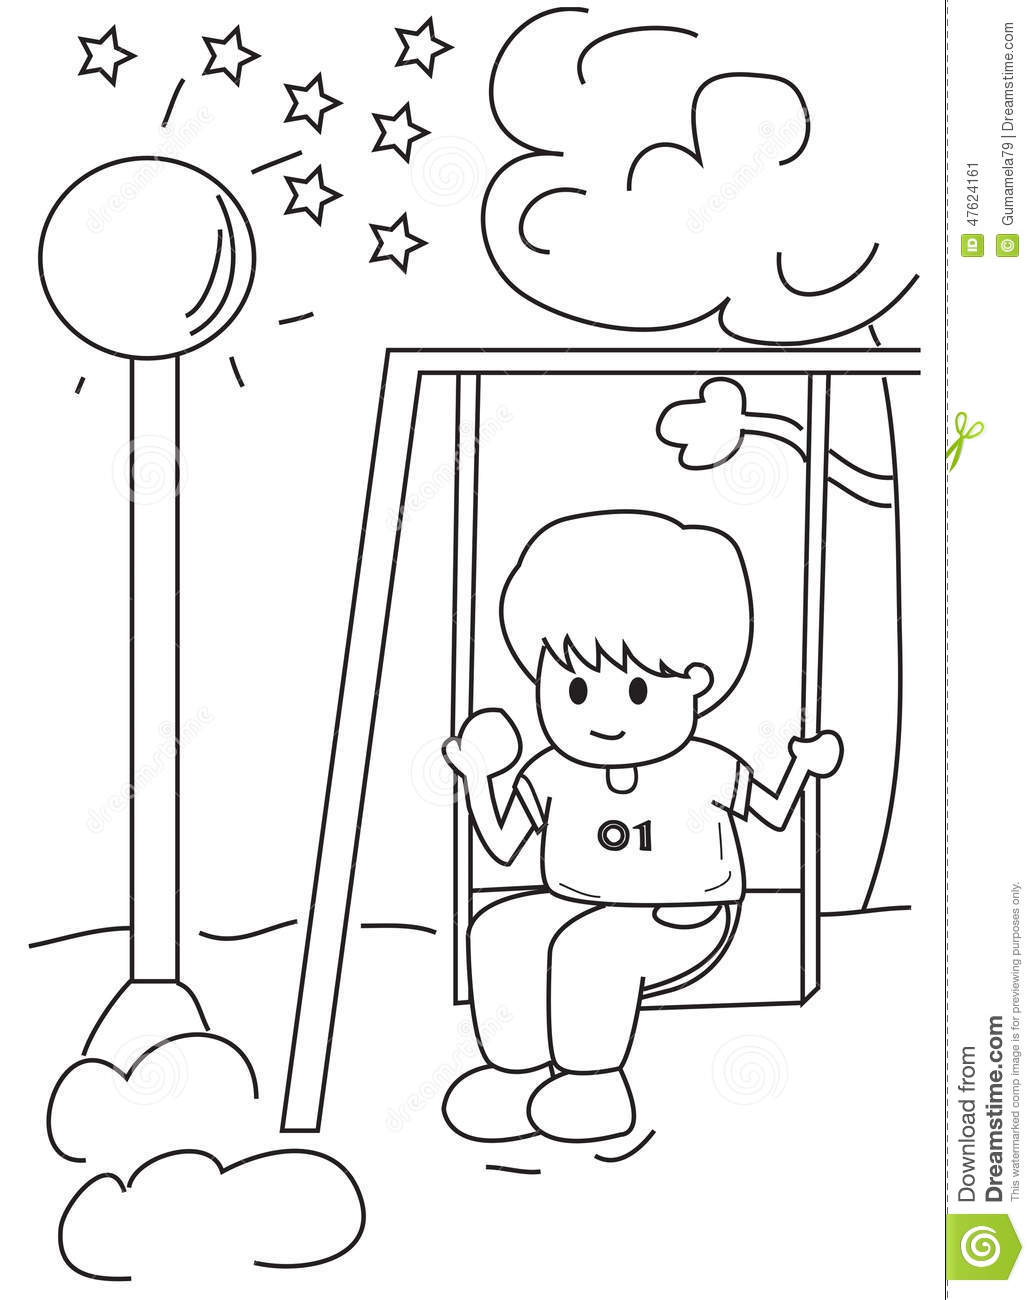 Hand Drawn Coloring Page Of A Boy On A Swing Stock